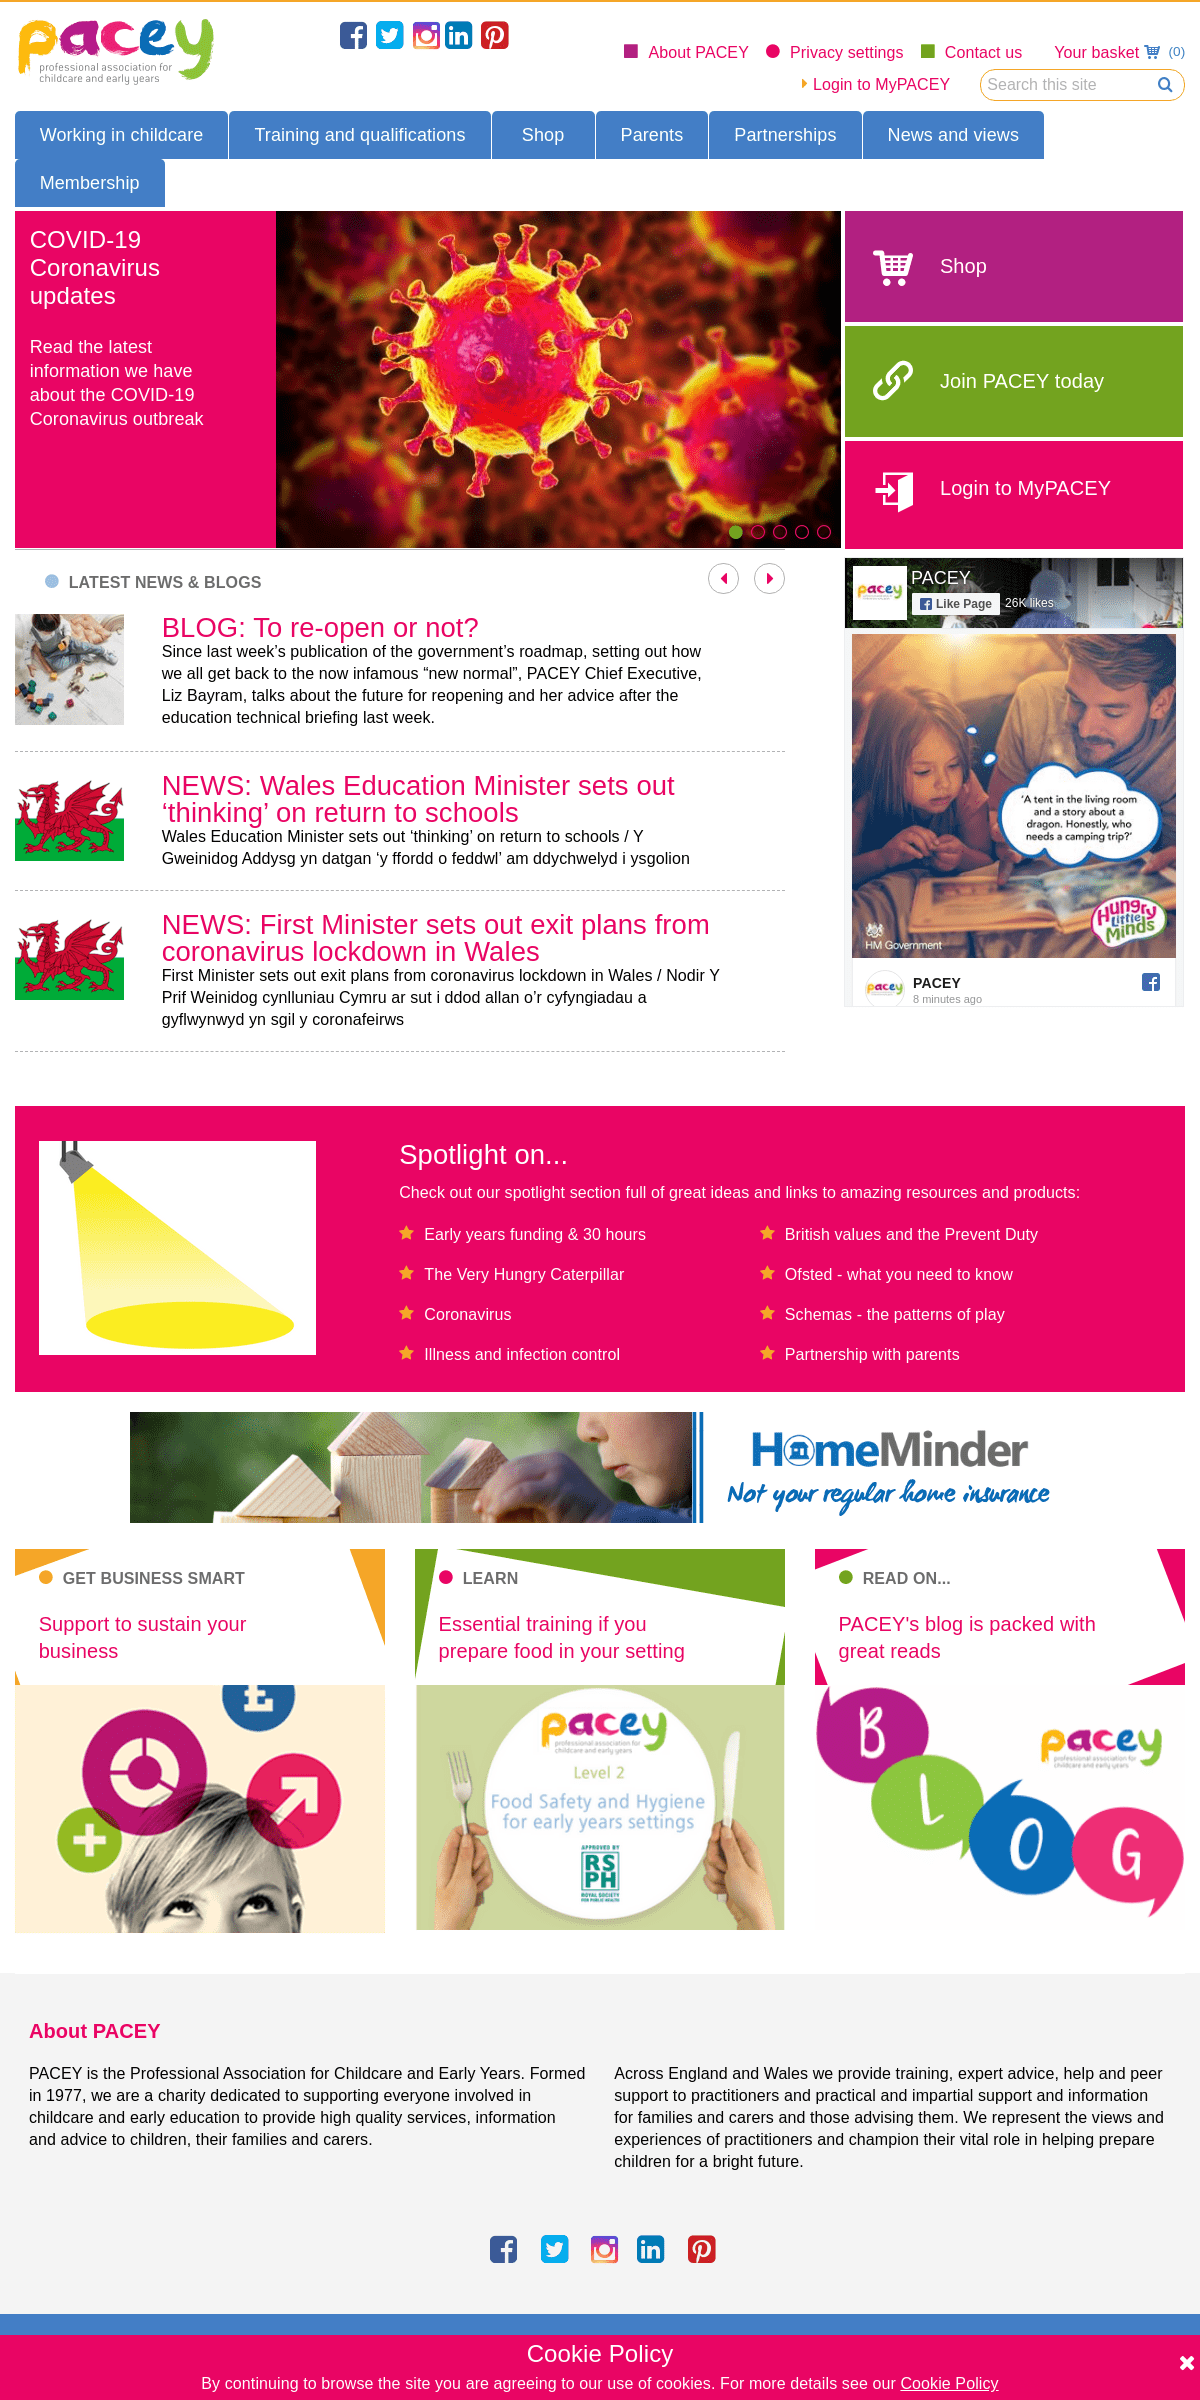 Professional Association for Childcare and Early Years - PACEY